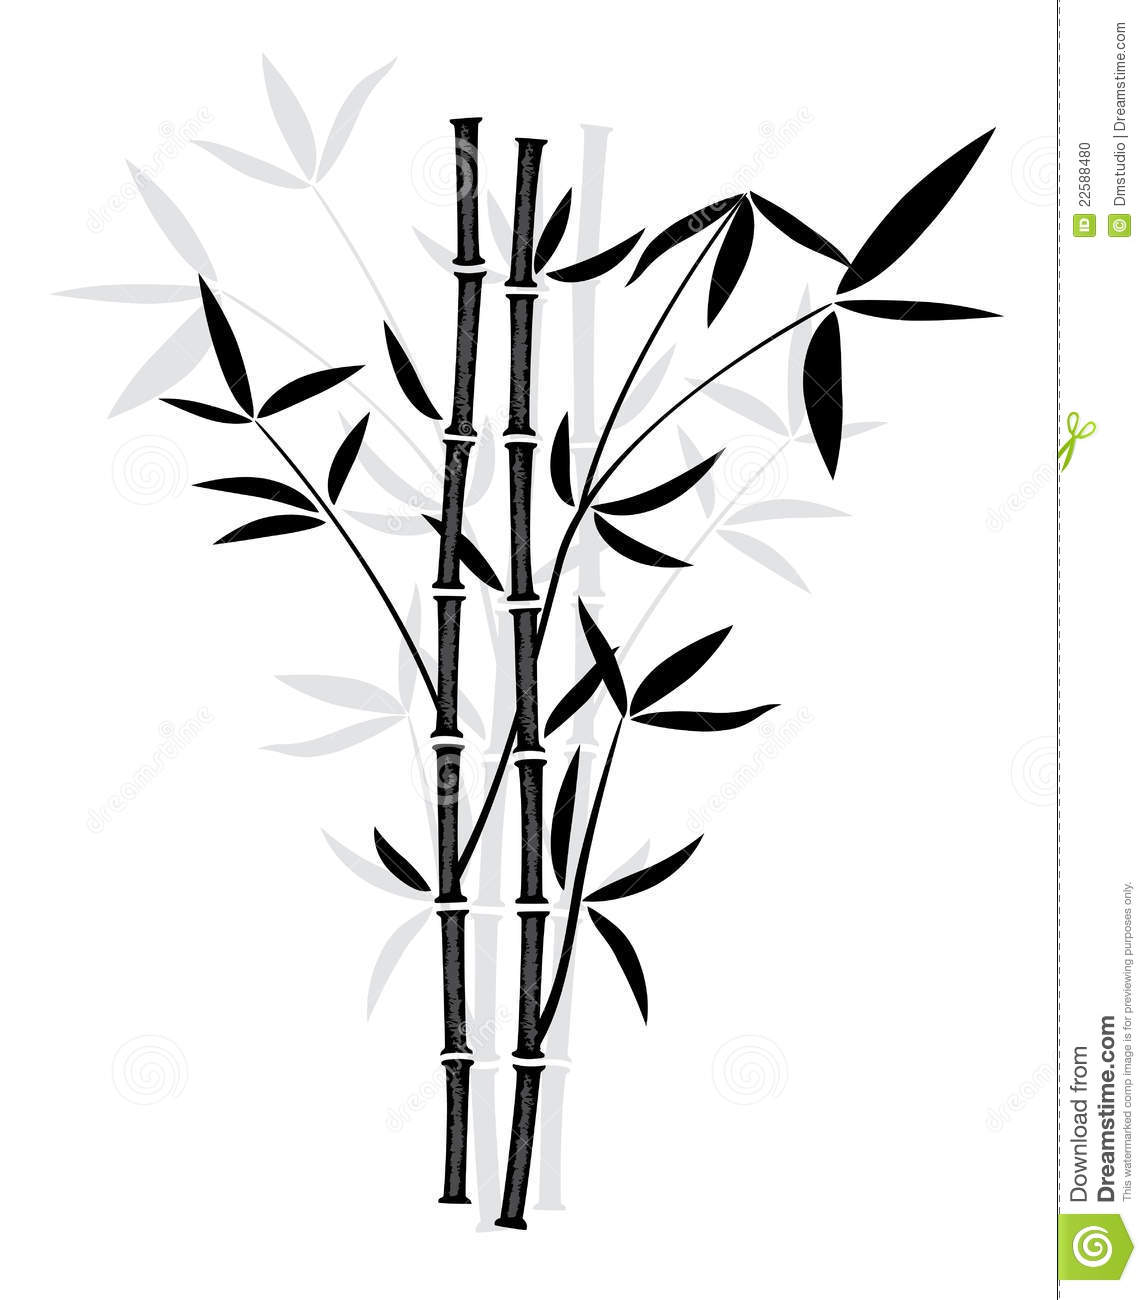 Black And White Bamboo Pictures to Pin on Pinterest ...